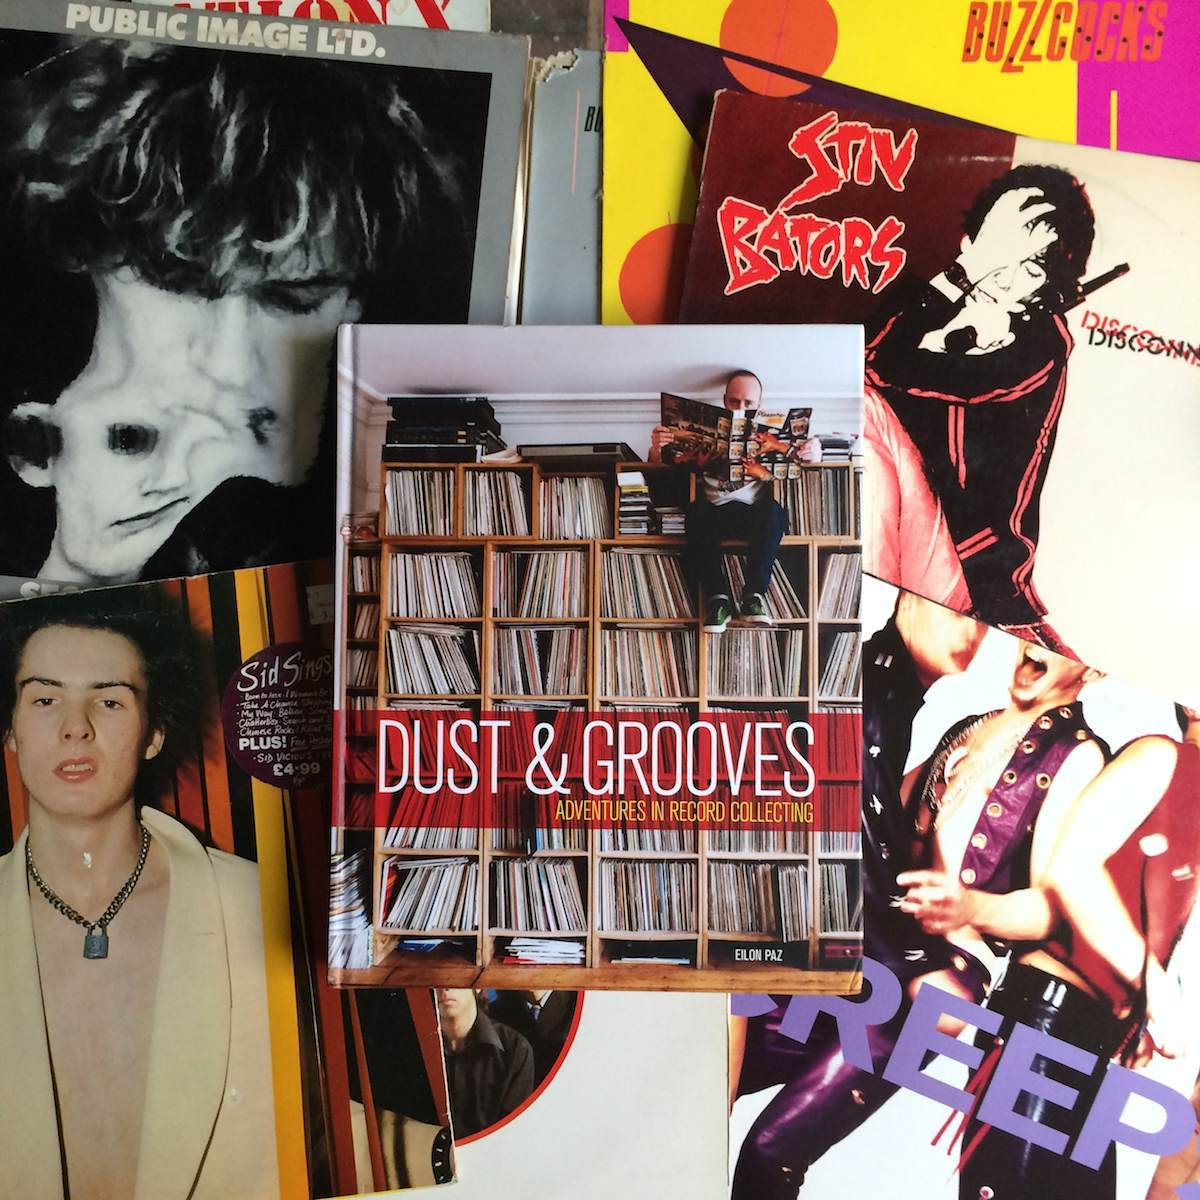 Dust and Grooves: fantastic photo book about vinyl record collectors